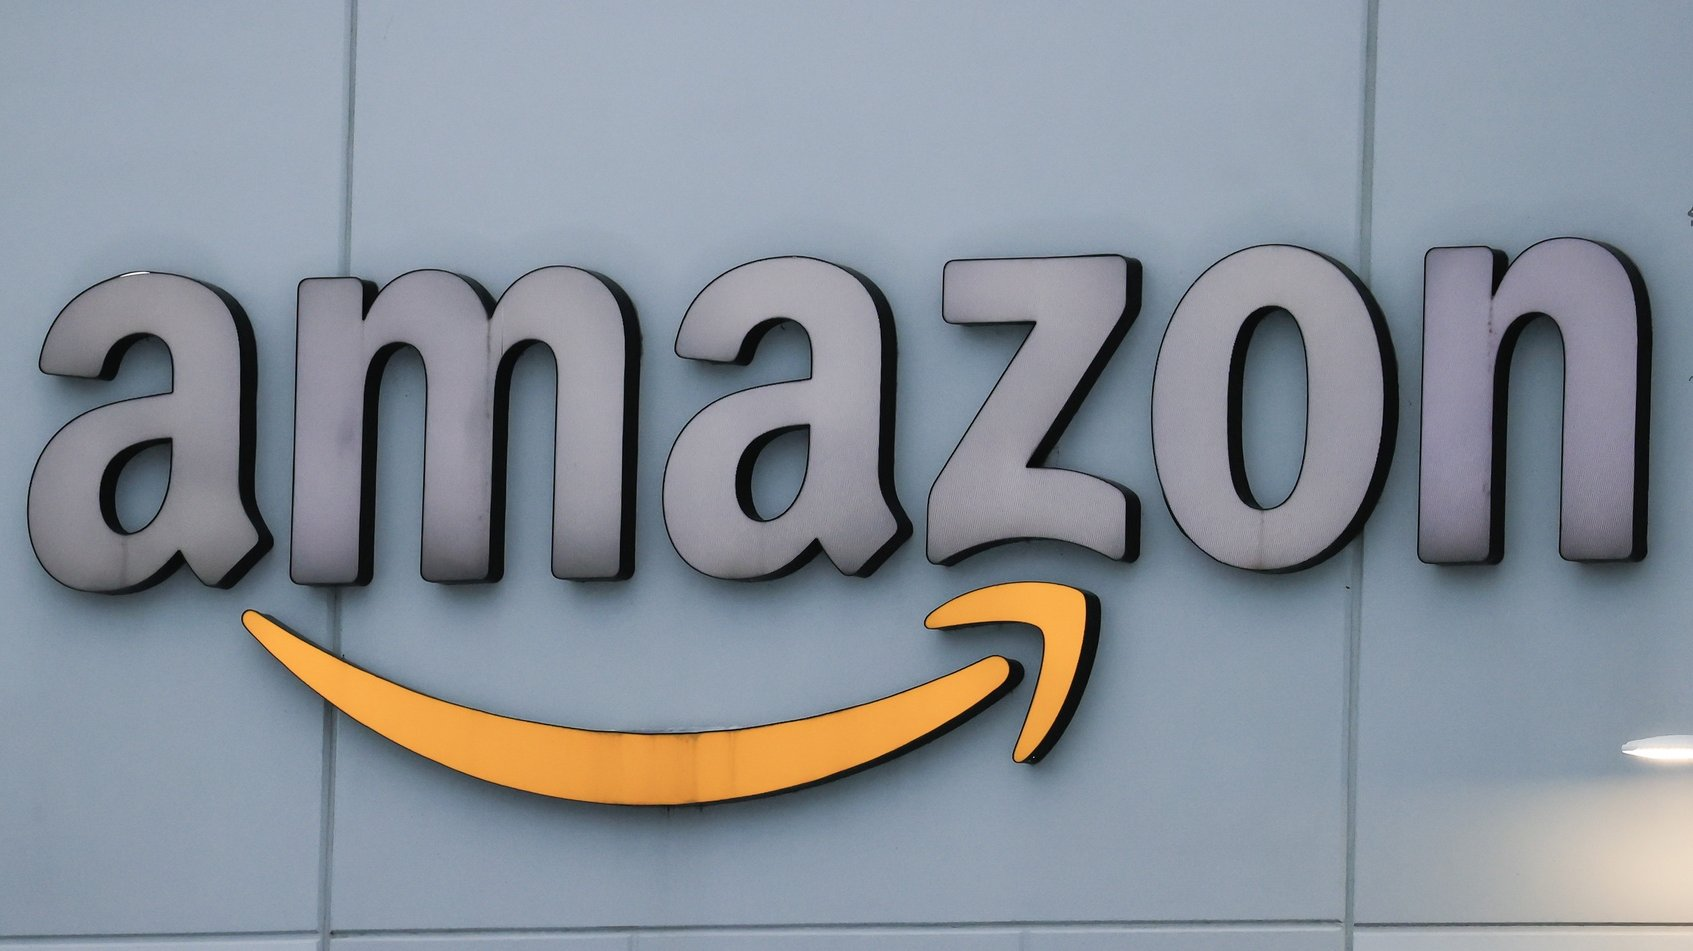 epa09193398 (FILE) An Amazon warehouse is outfitted with the Amazon logo in Waukegan, Illinois, USA, 02 February 2021 (reissued 12 May 2021). The EU Court in Luxembourg on 12 May 2021 annulled an order by the European Union demanding Amazon to pay about 250 million euros in taxes.  EPA/TANNEN MAURY